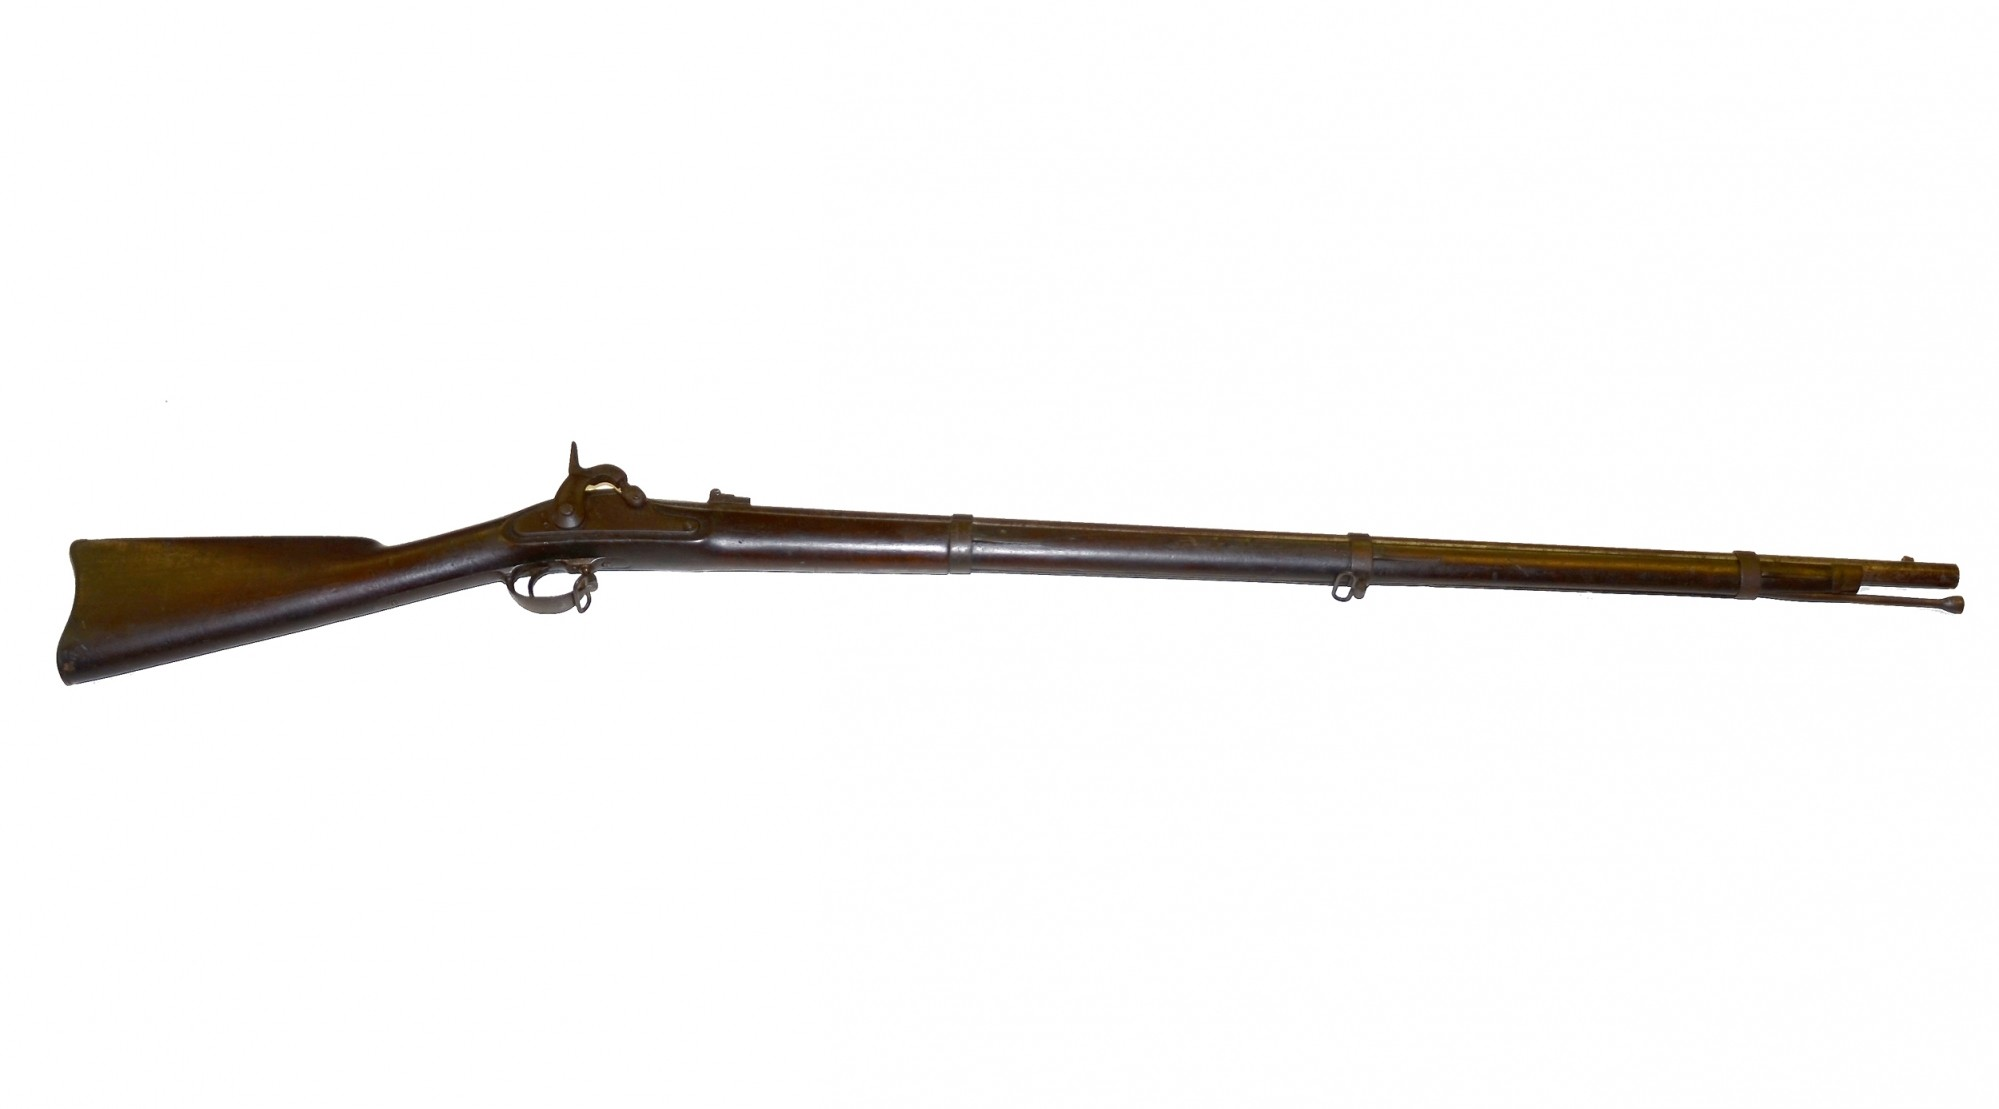 MODEL 1861 U.S. SPRINGFIELD MUSKET DATED 1861